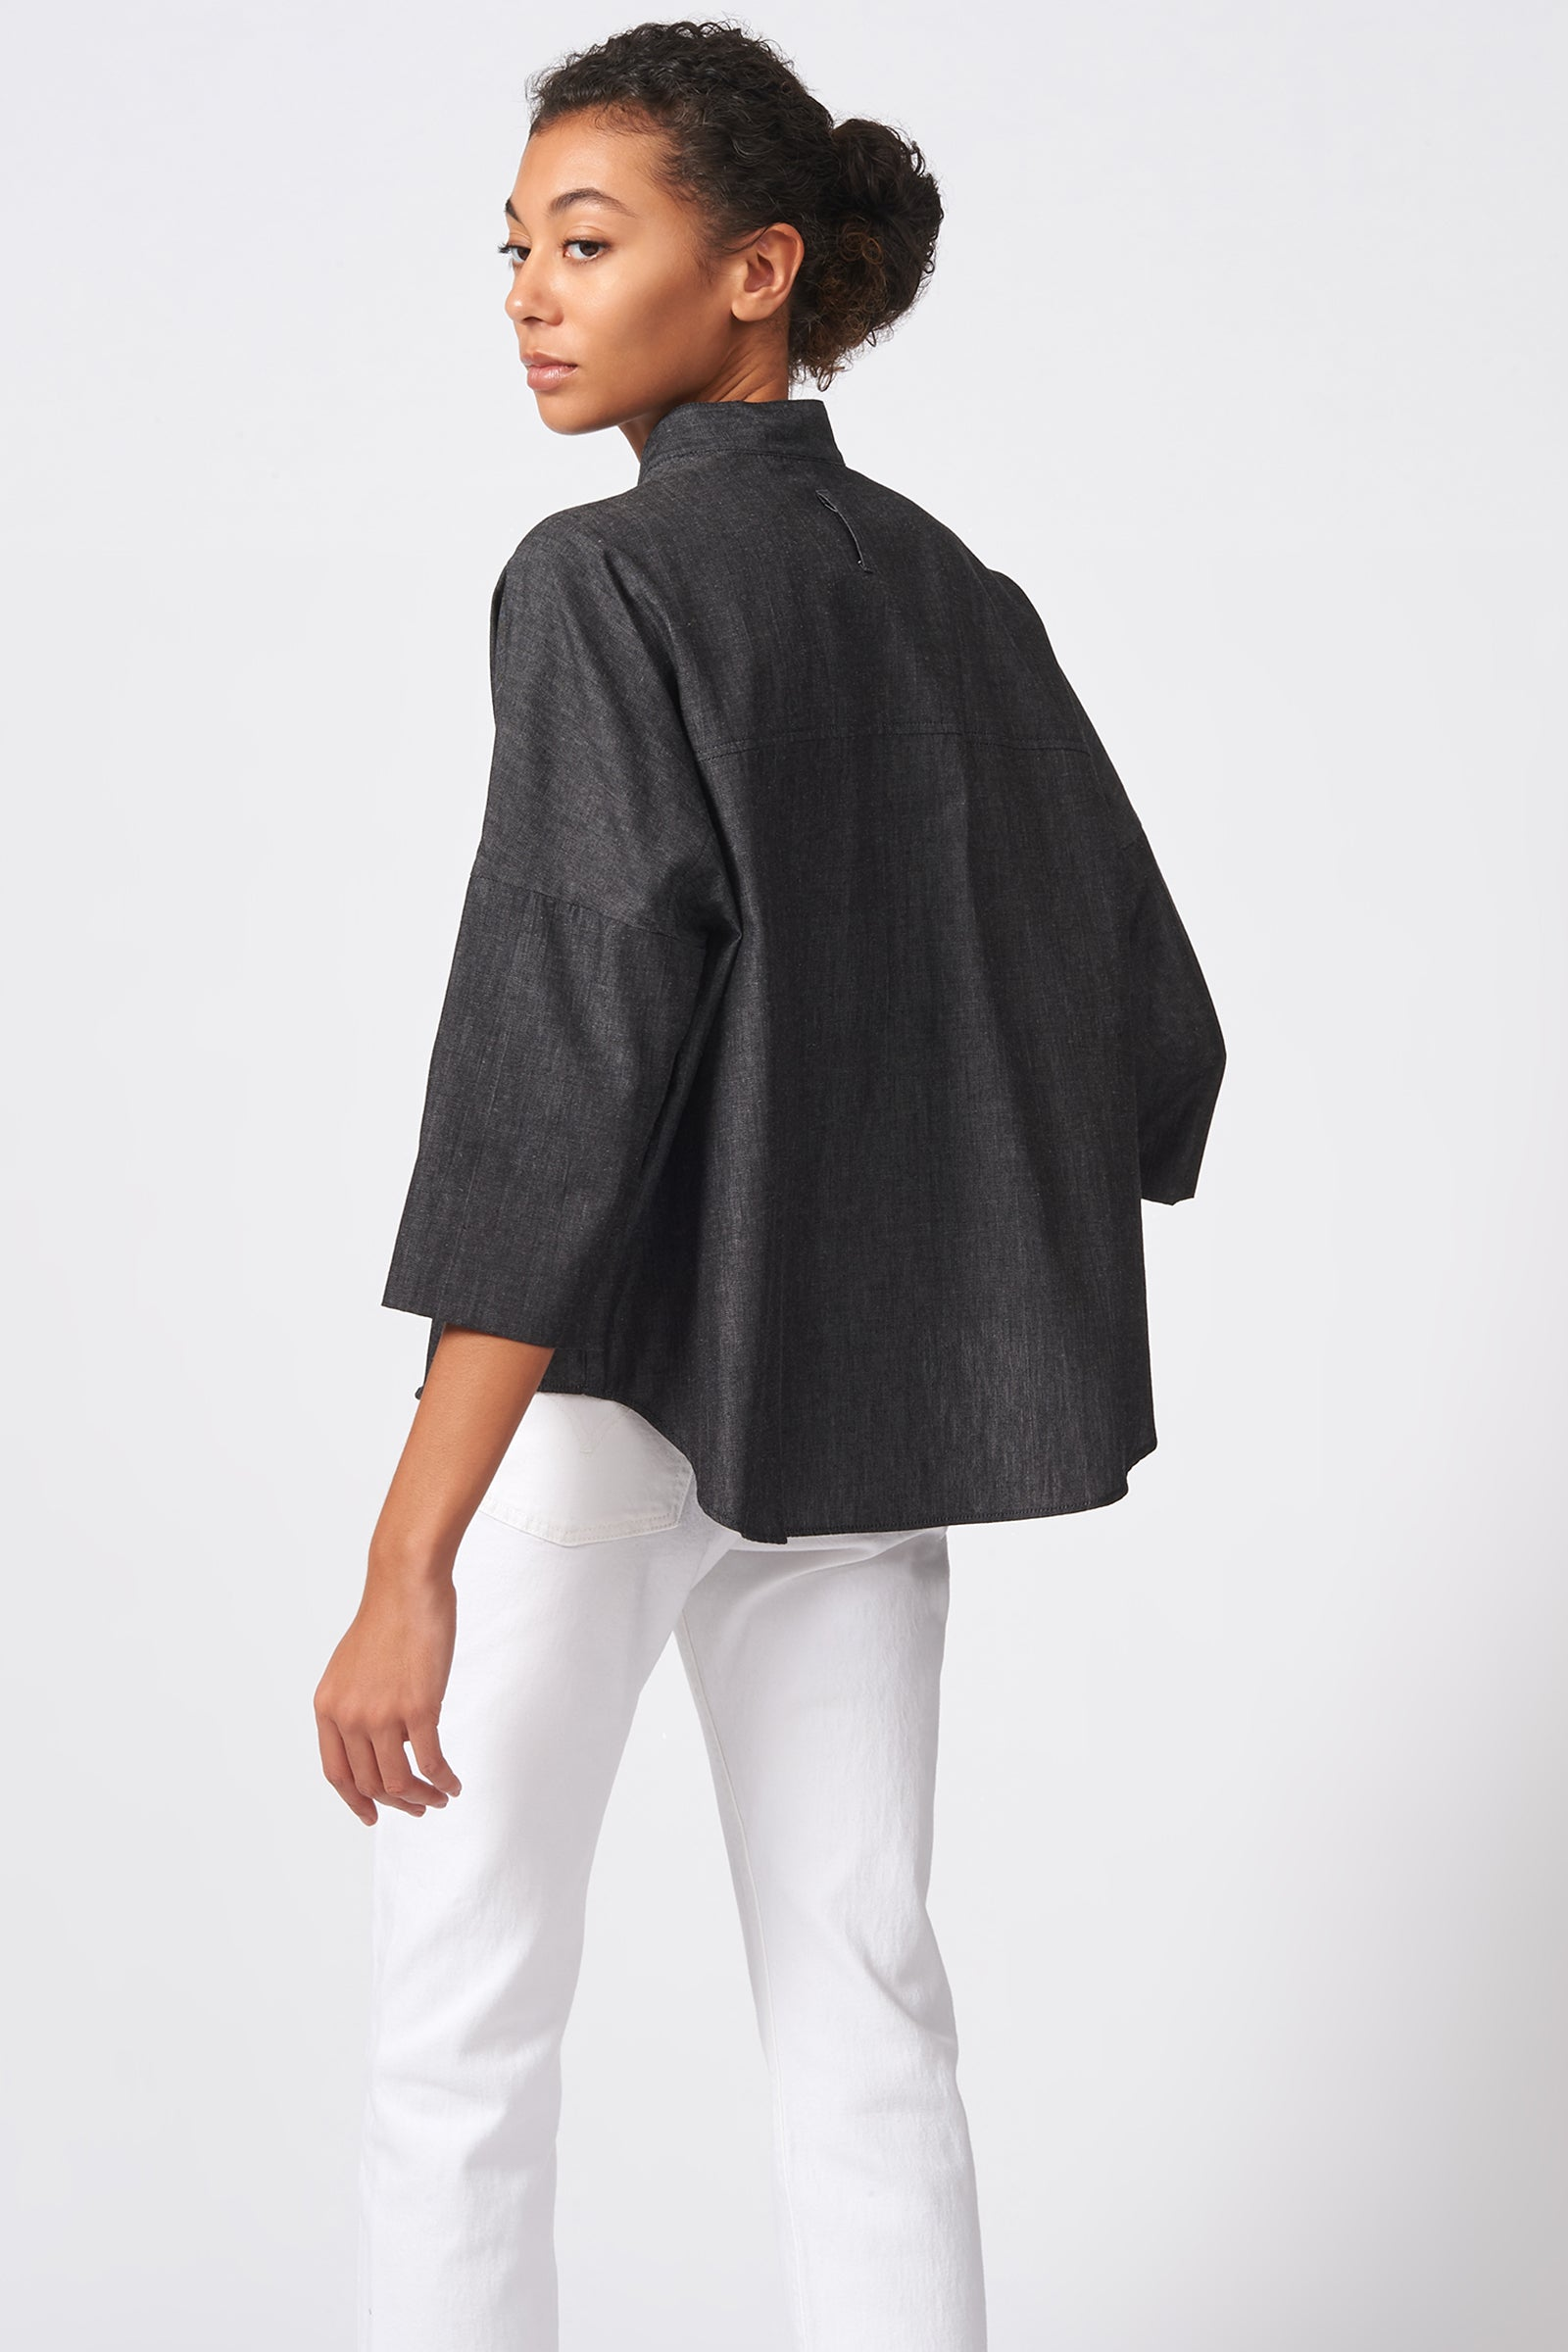 Kal Rieman Drop Shoulder Top in Dark Denim on Model Full Front View